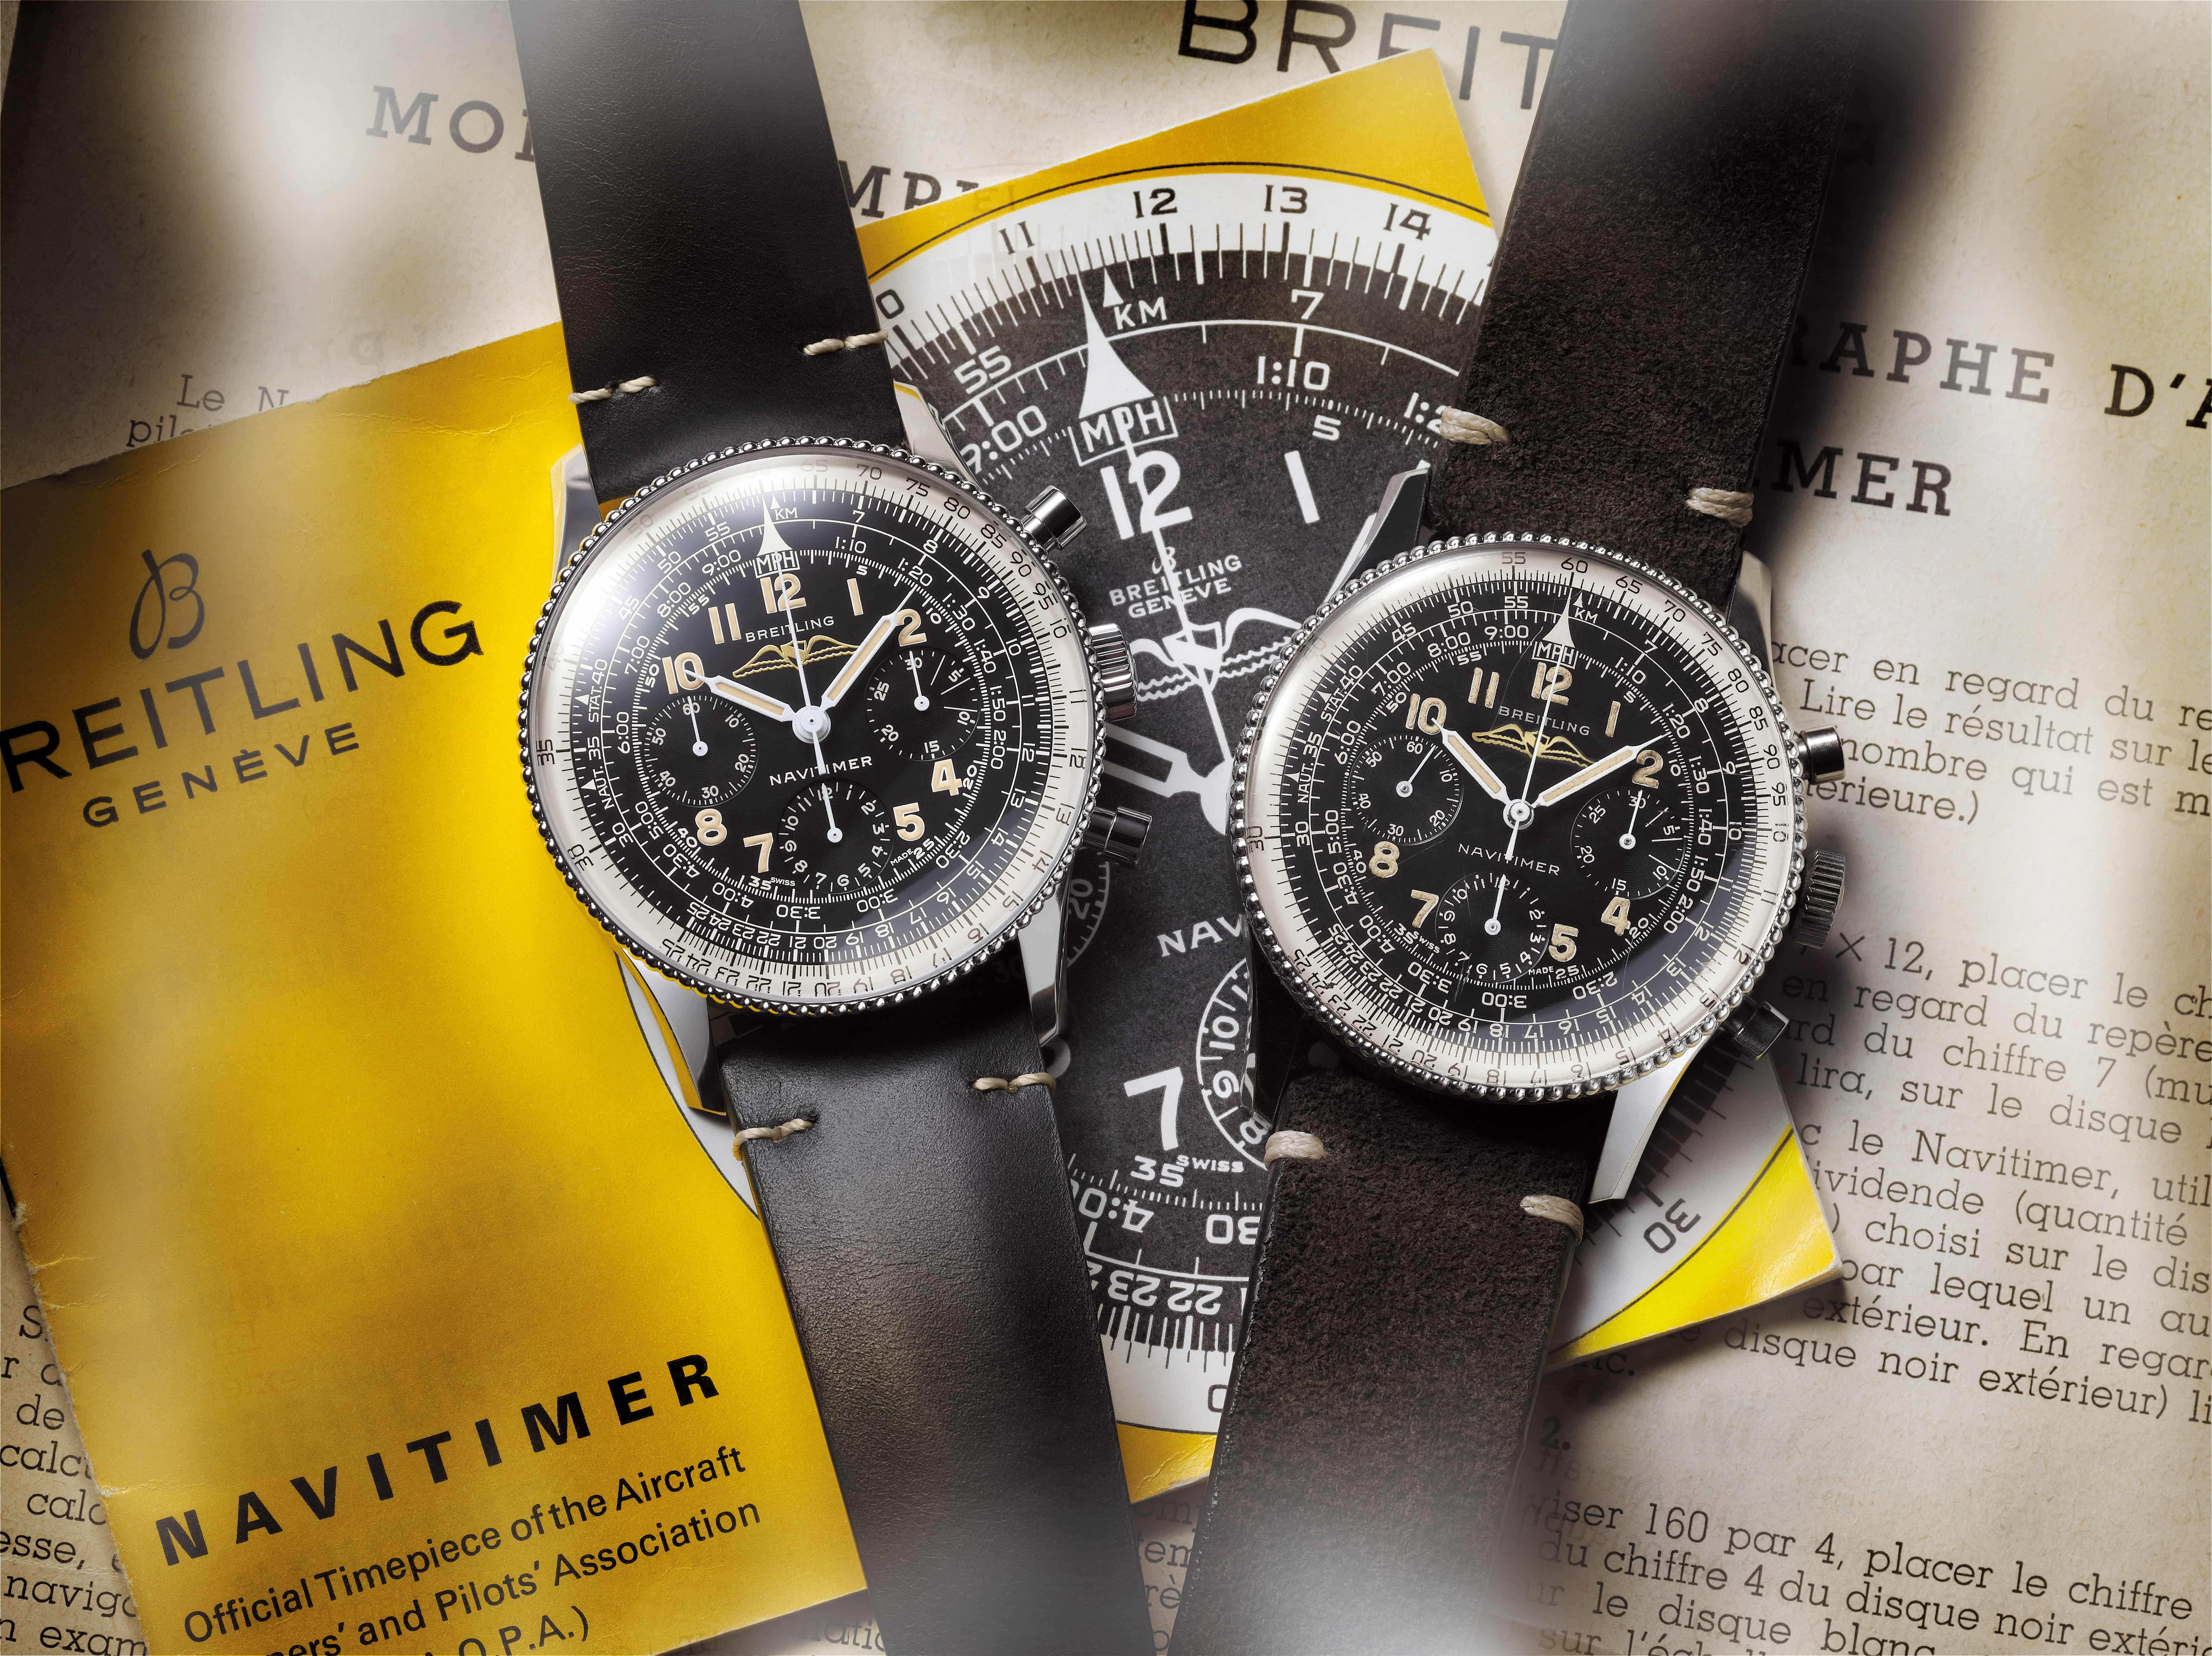 Breitling Watches 2019 Baselworld